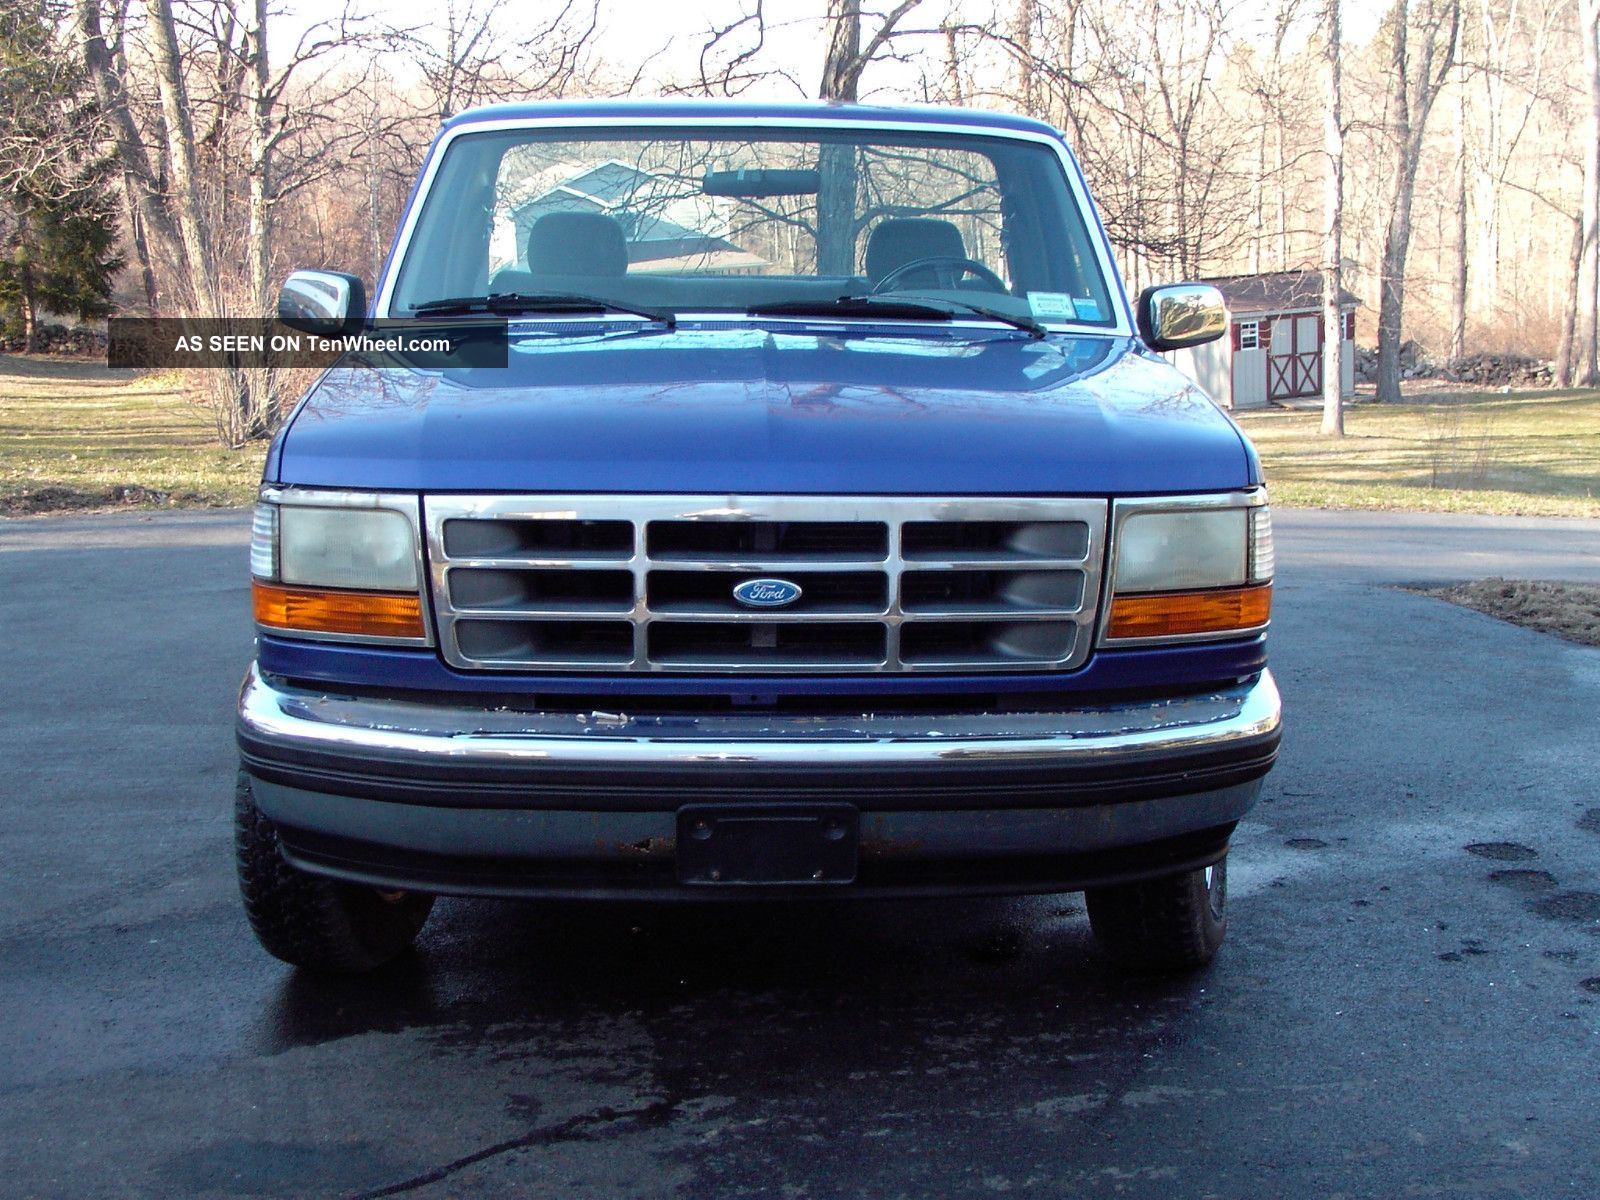 Ford f-150 1995 photo - 4